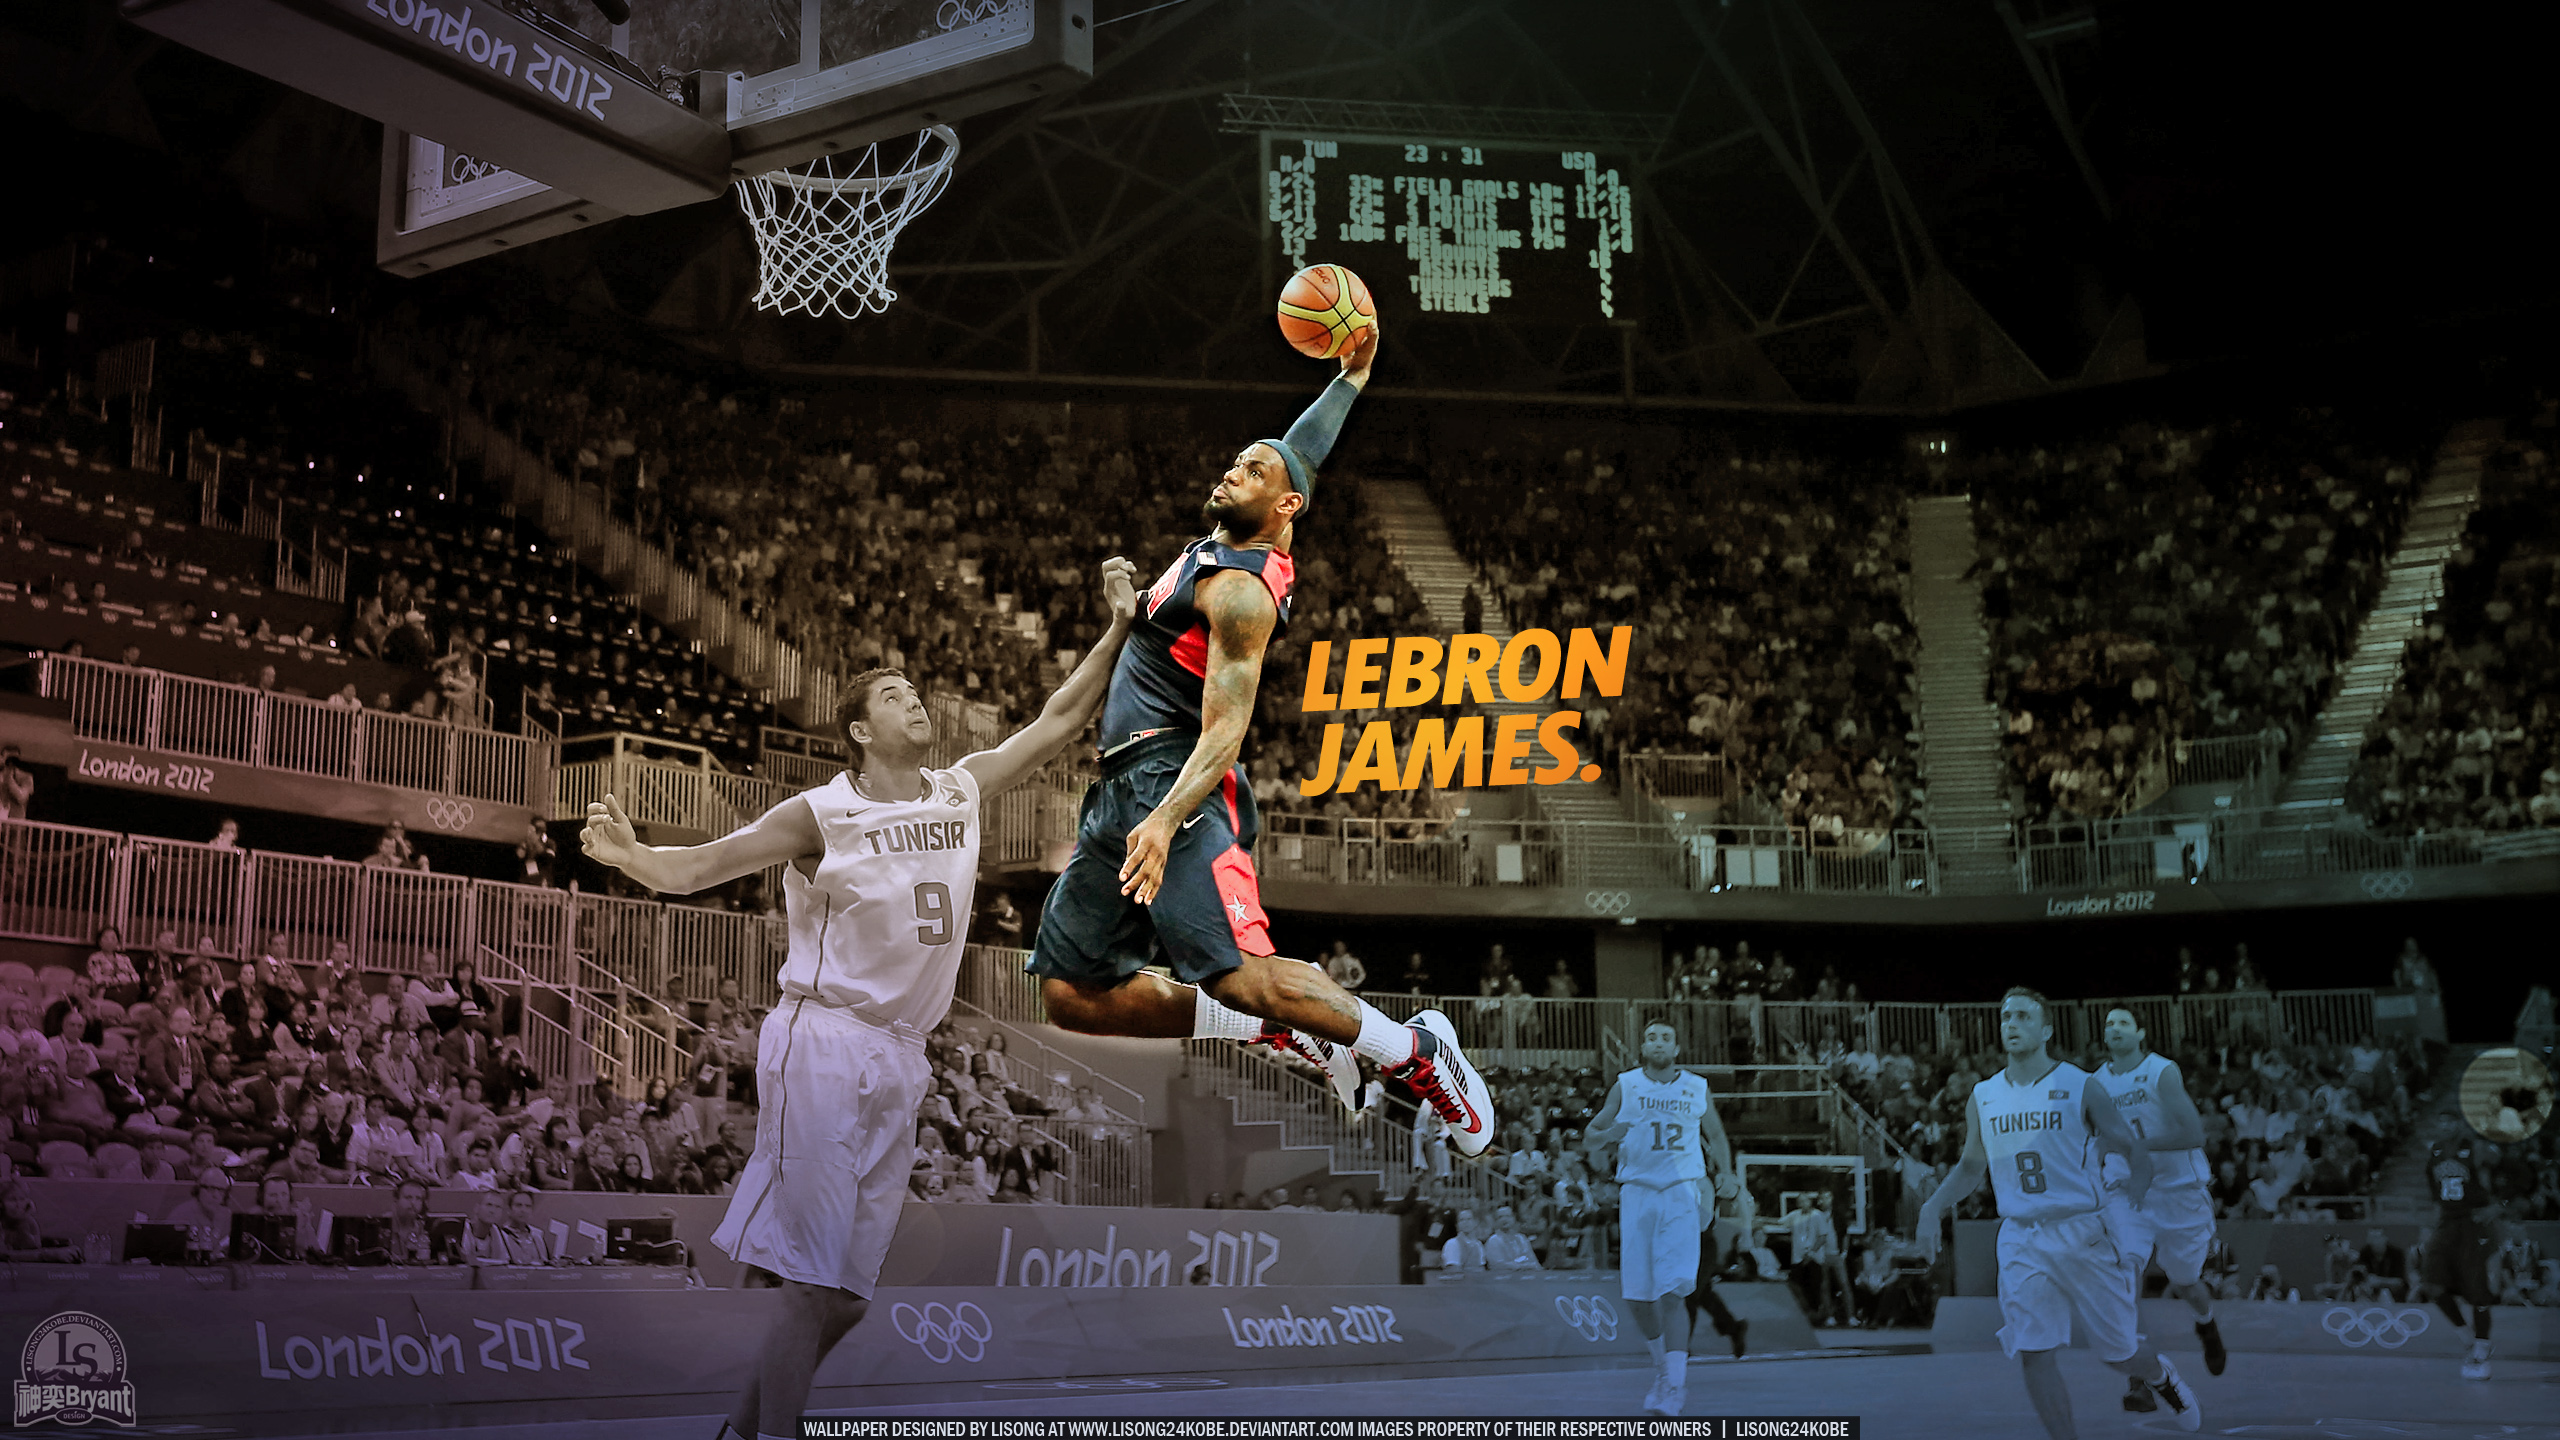 Fantastic Wallpaper Mac Lebron James - 285861  Trends_833359.jpg